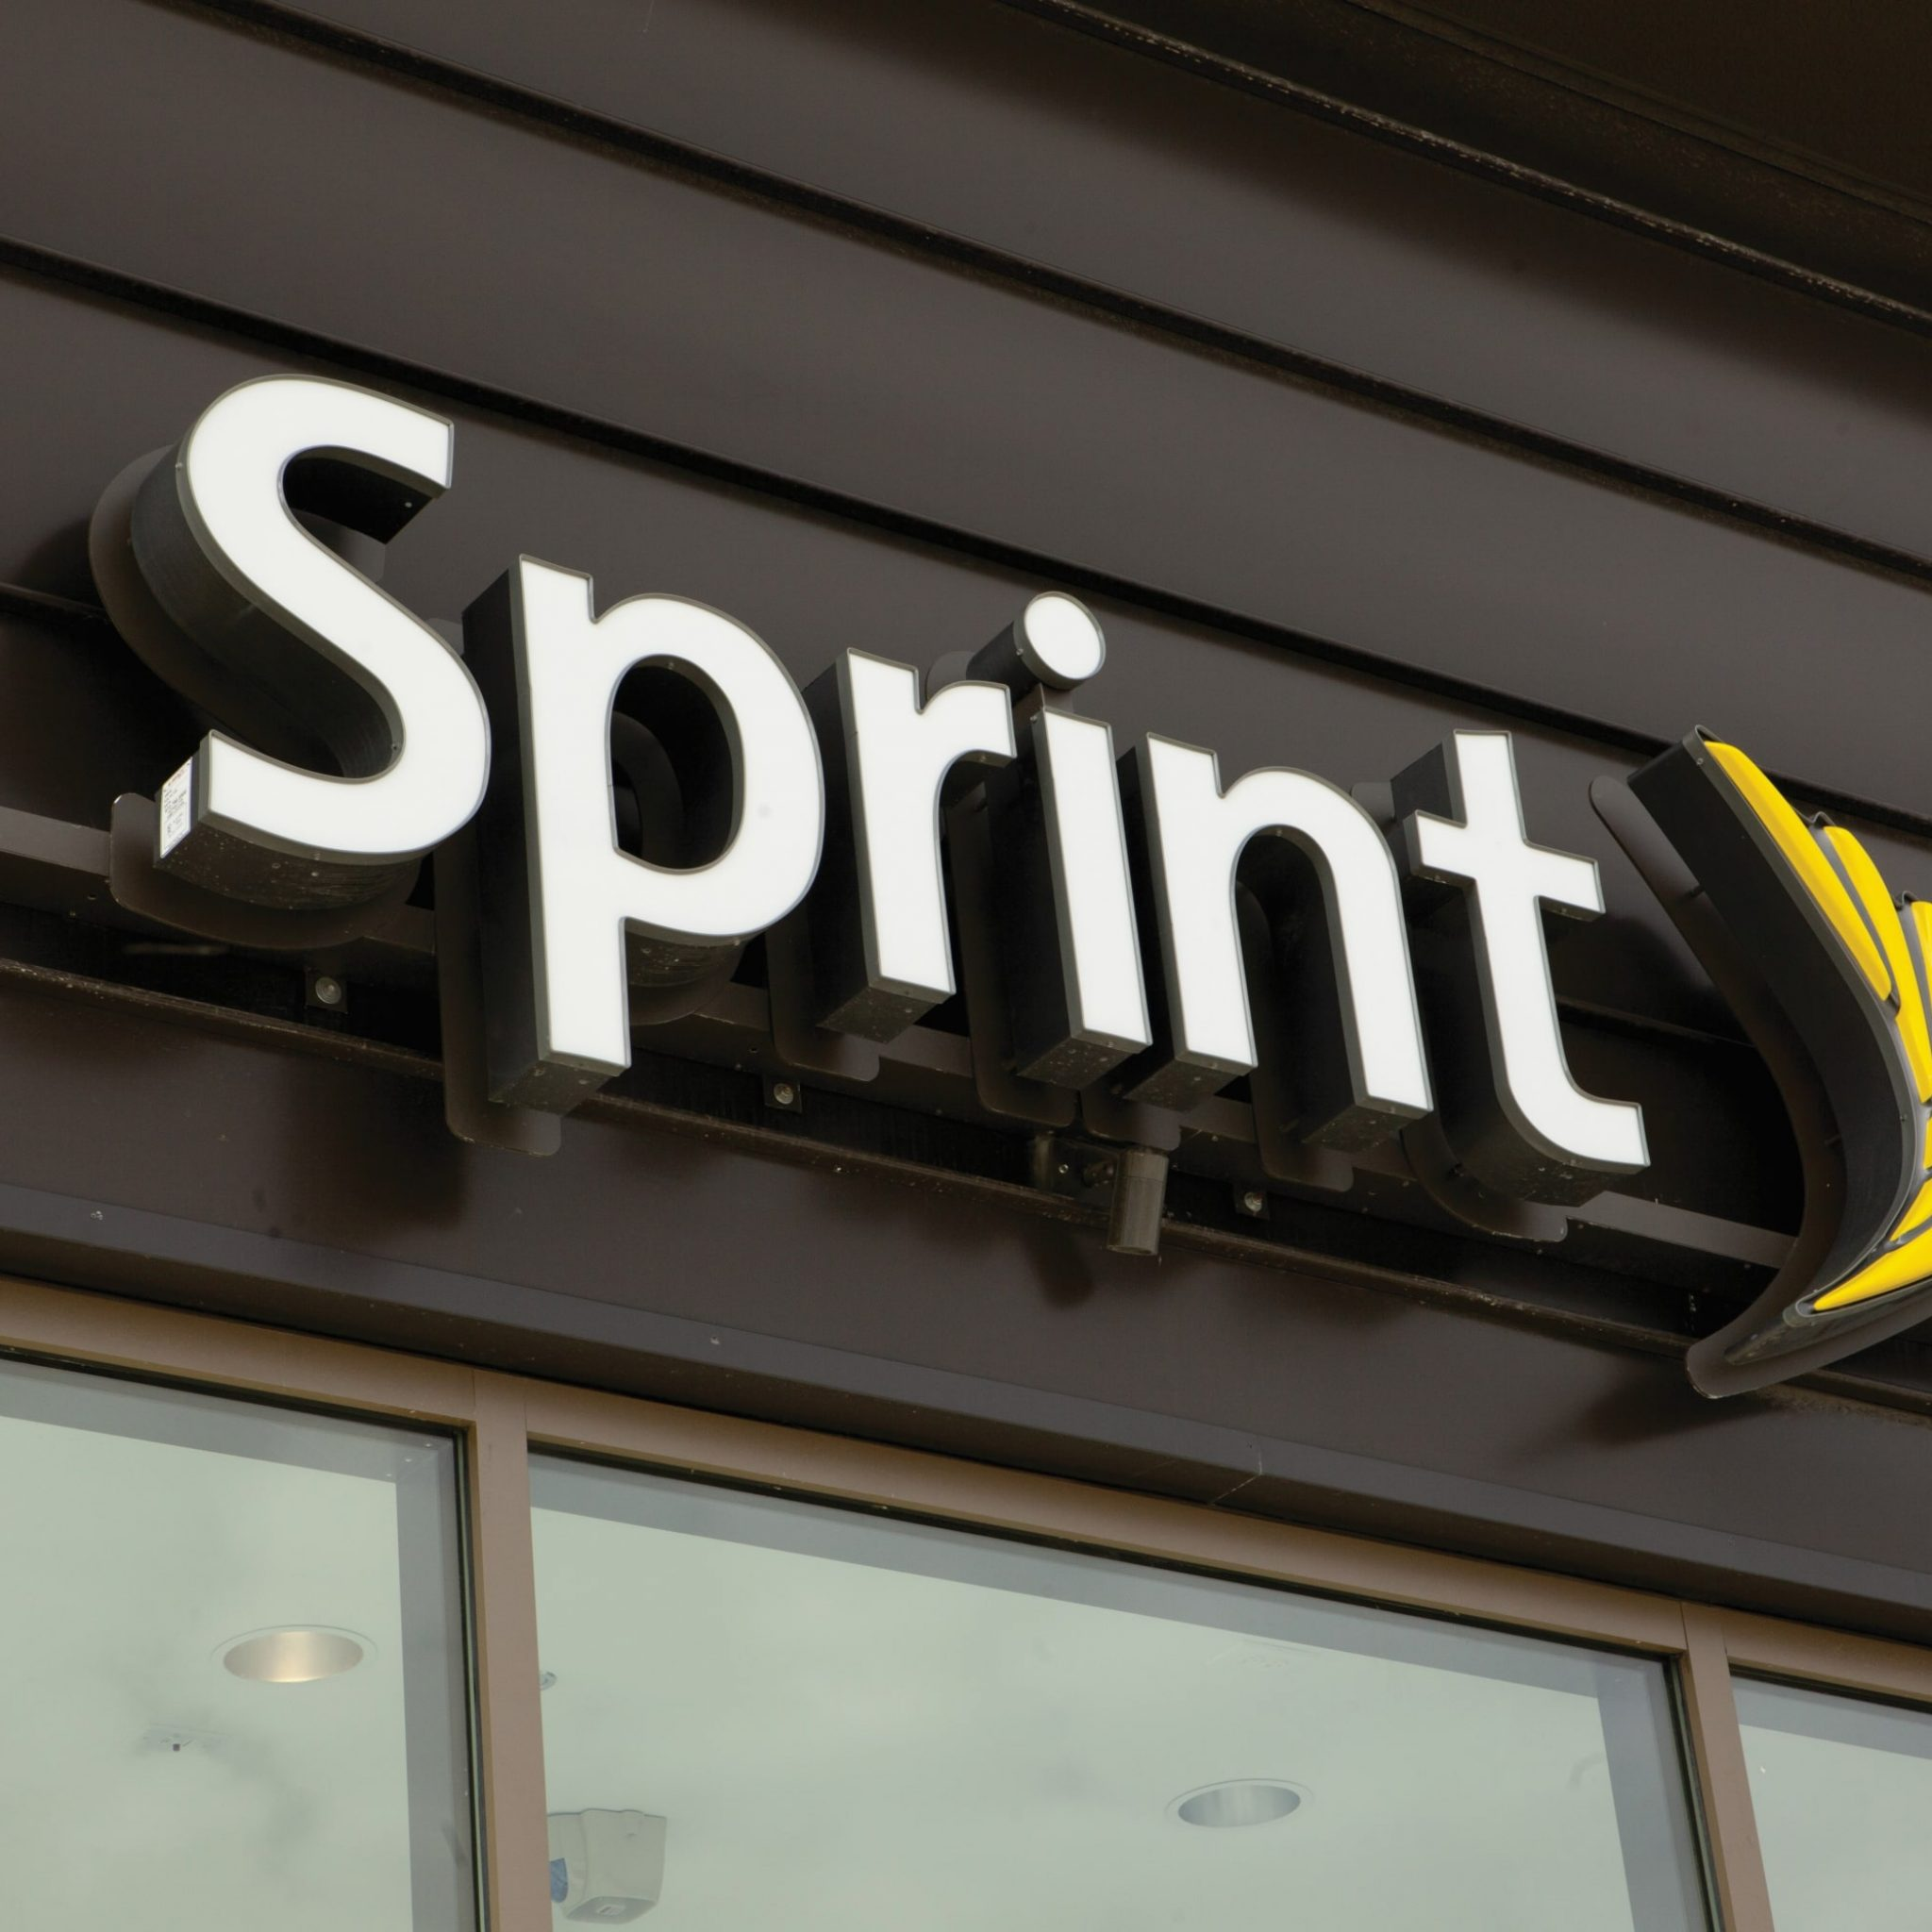 Sprint adds a new 5G device to its line up